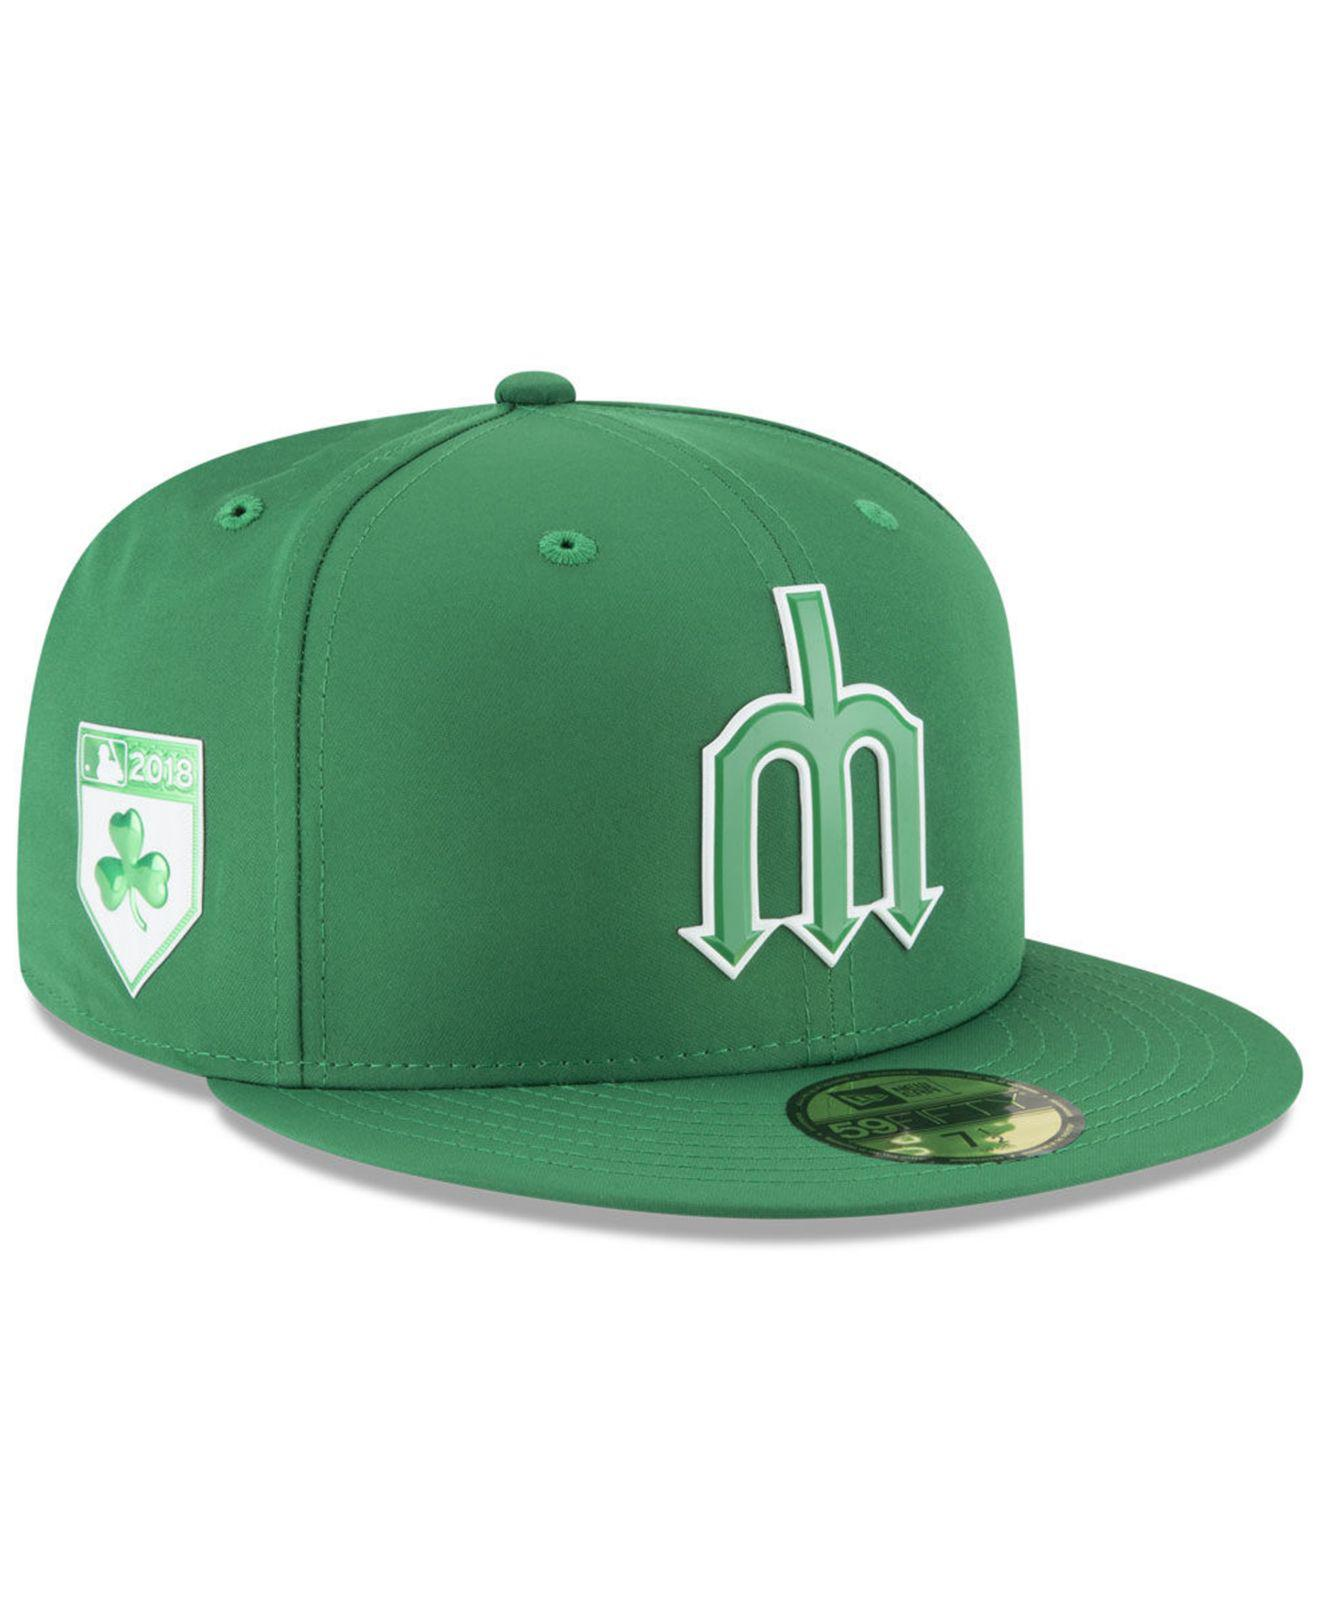 Lyst - Ktz Seattle Mariners St. Patty s Day Pro Light 59fifty Fitted ... e038f91cb423